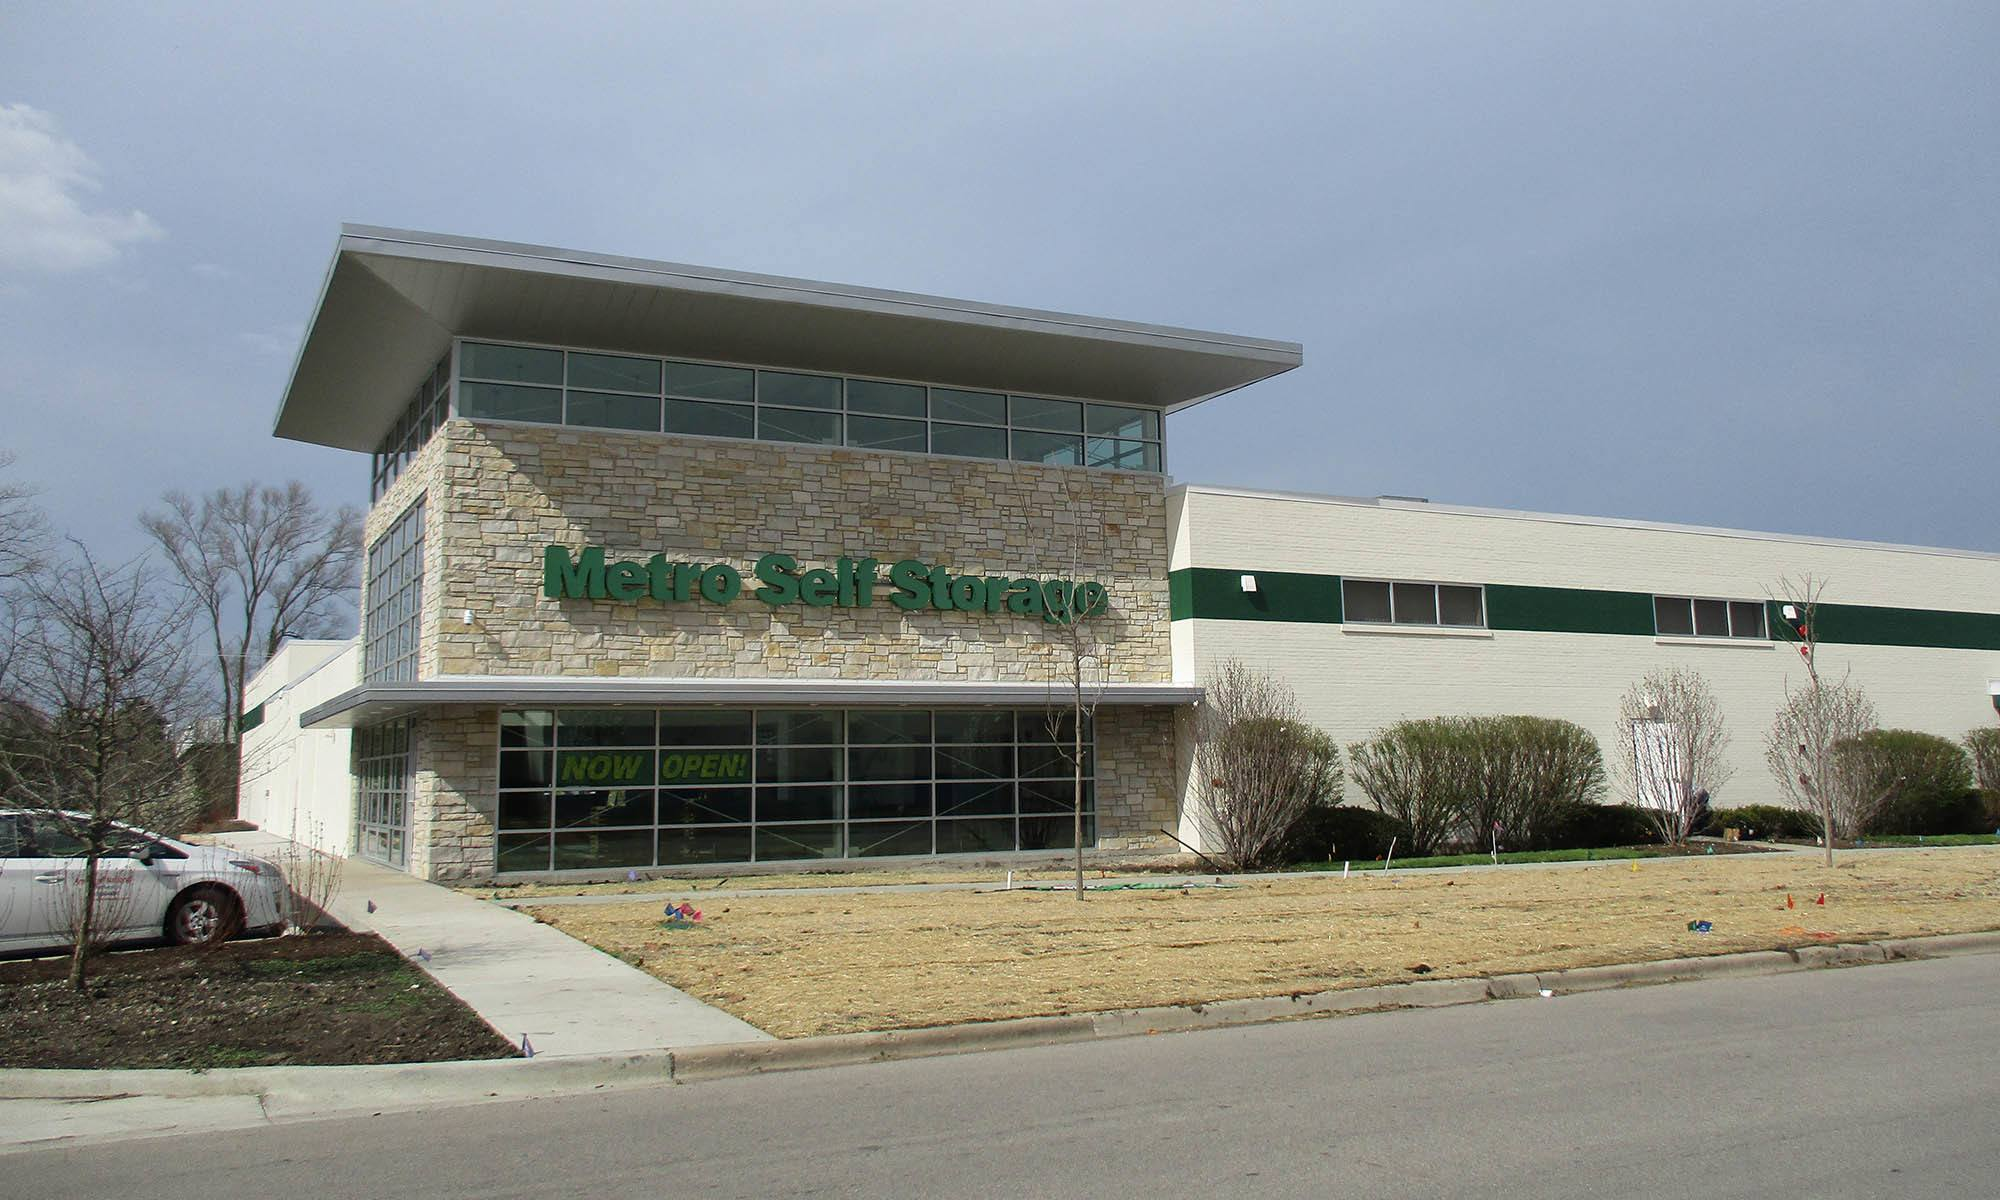 Metro Self Storage in Northbrook, IL